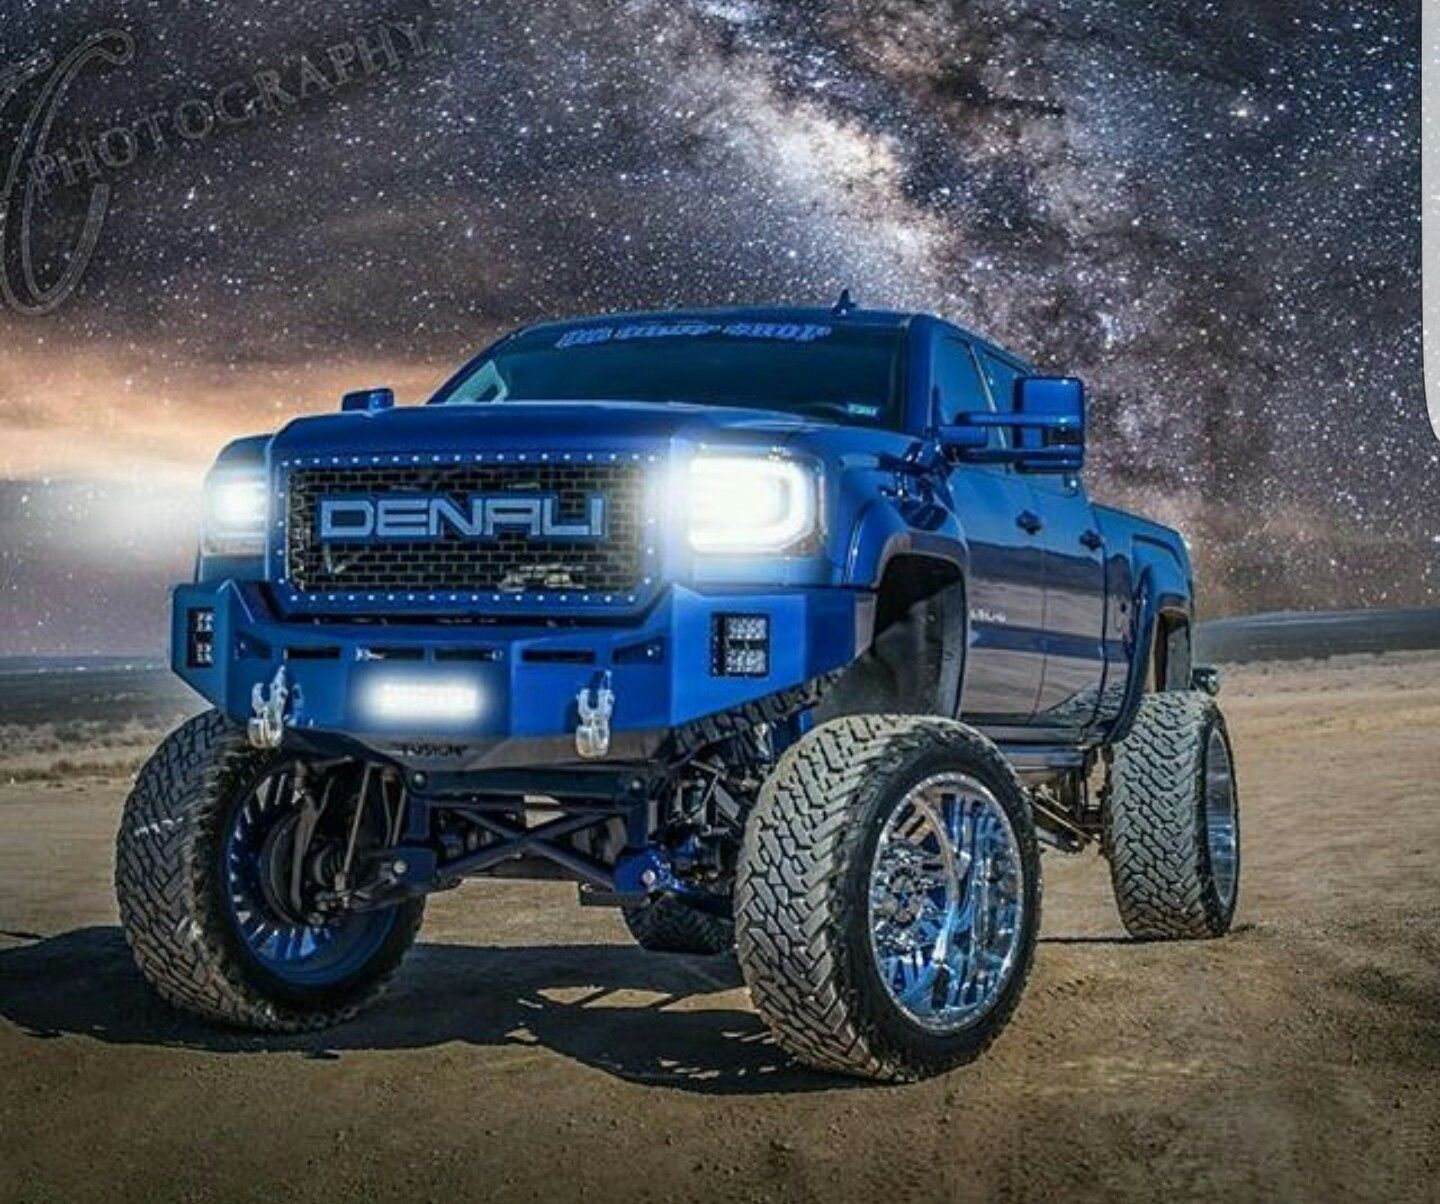 Gm Trucks Diesel Lifted Chevy Jeep Suv Blue Cars Truck Accessories Custom Monster